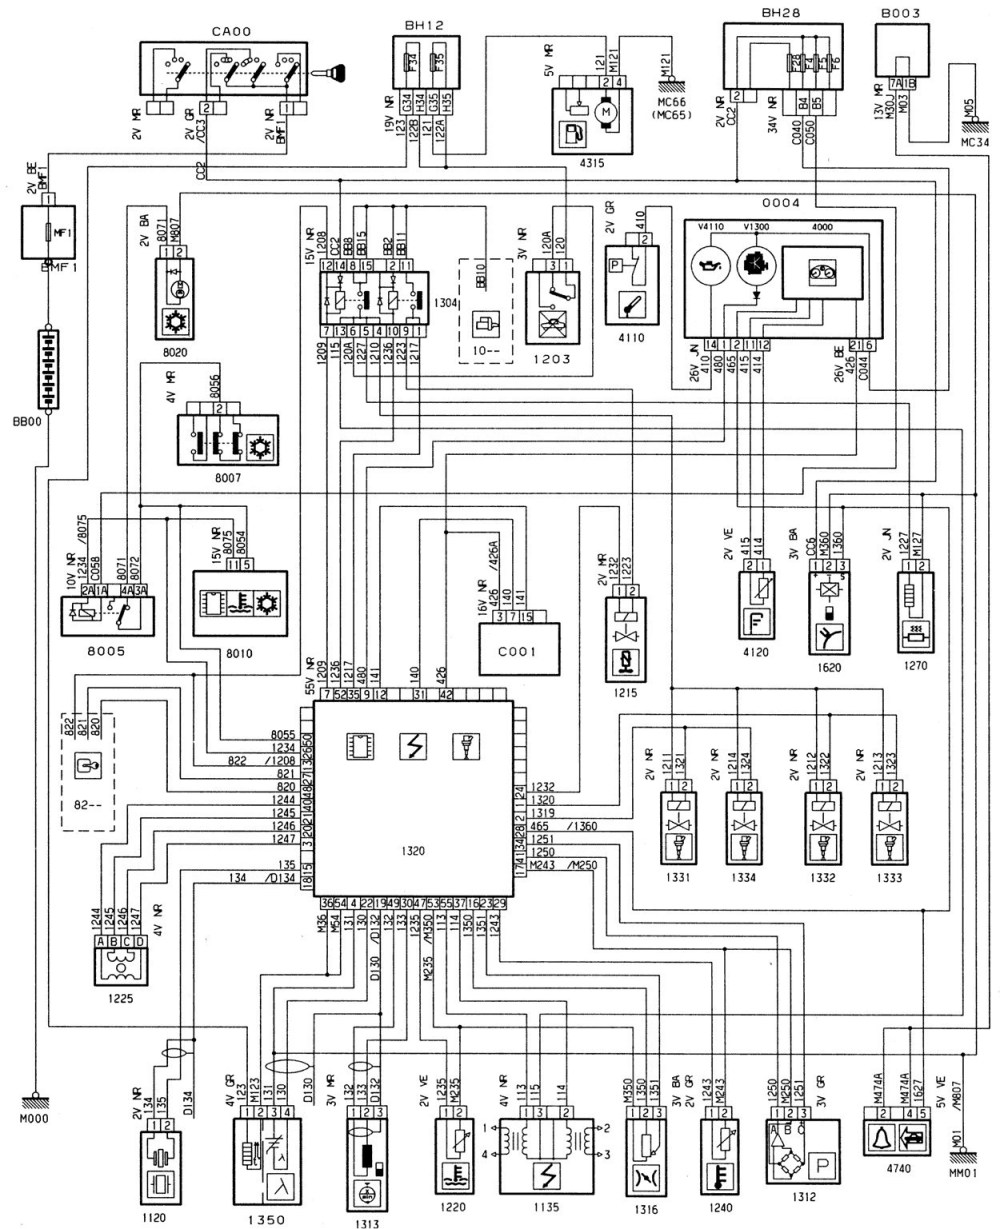 medium resolution of peugeot engine wiring diagram wiring diagram expert peugeot engine diagrams